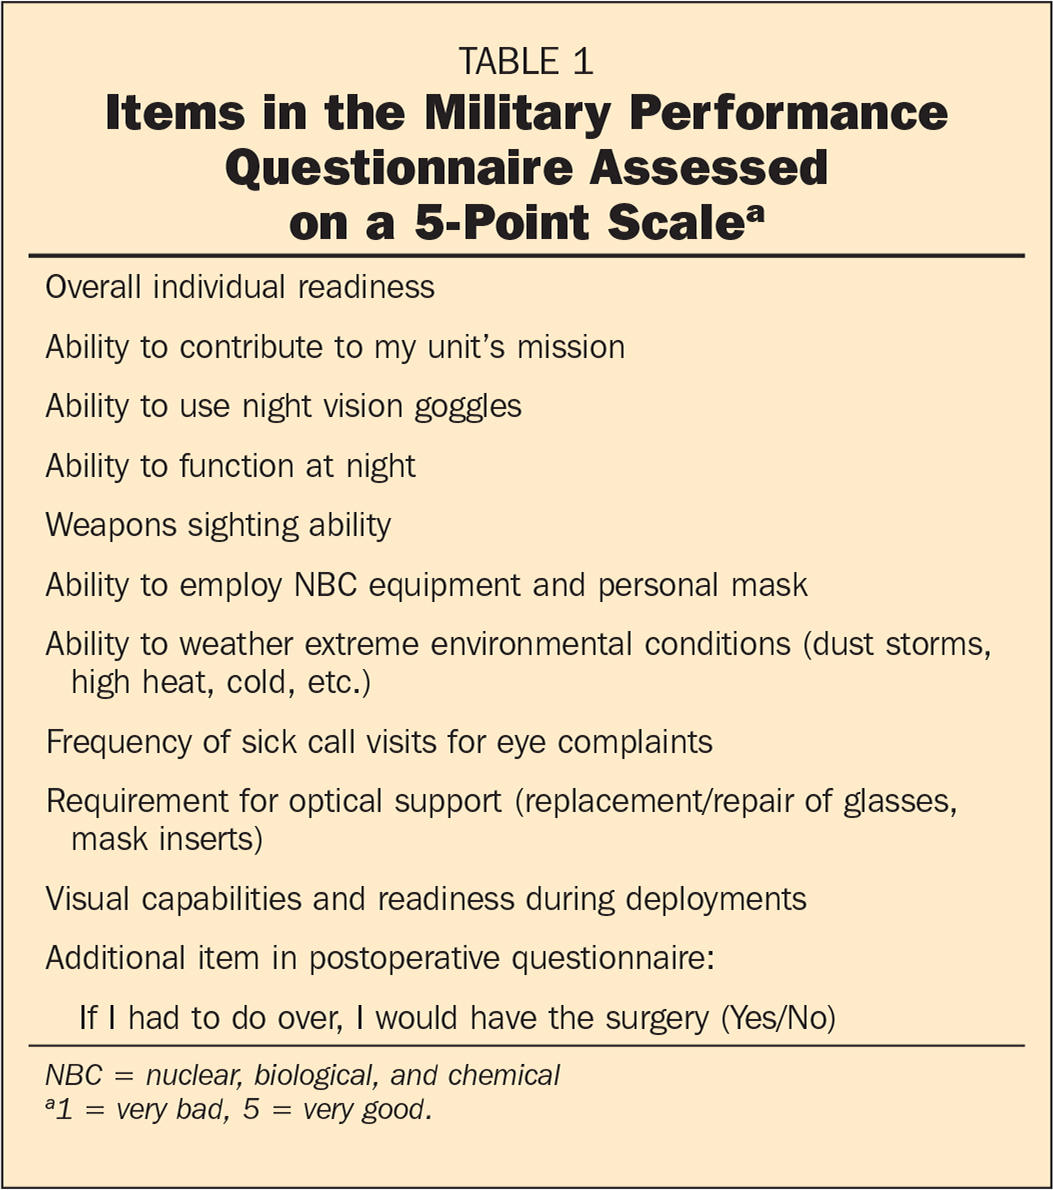 Items in the Military Performance Questionnaire Assessed on a 5-Point Scalea